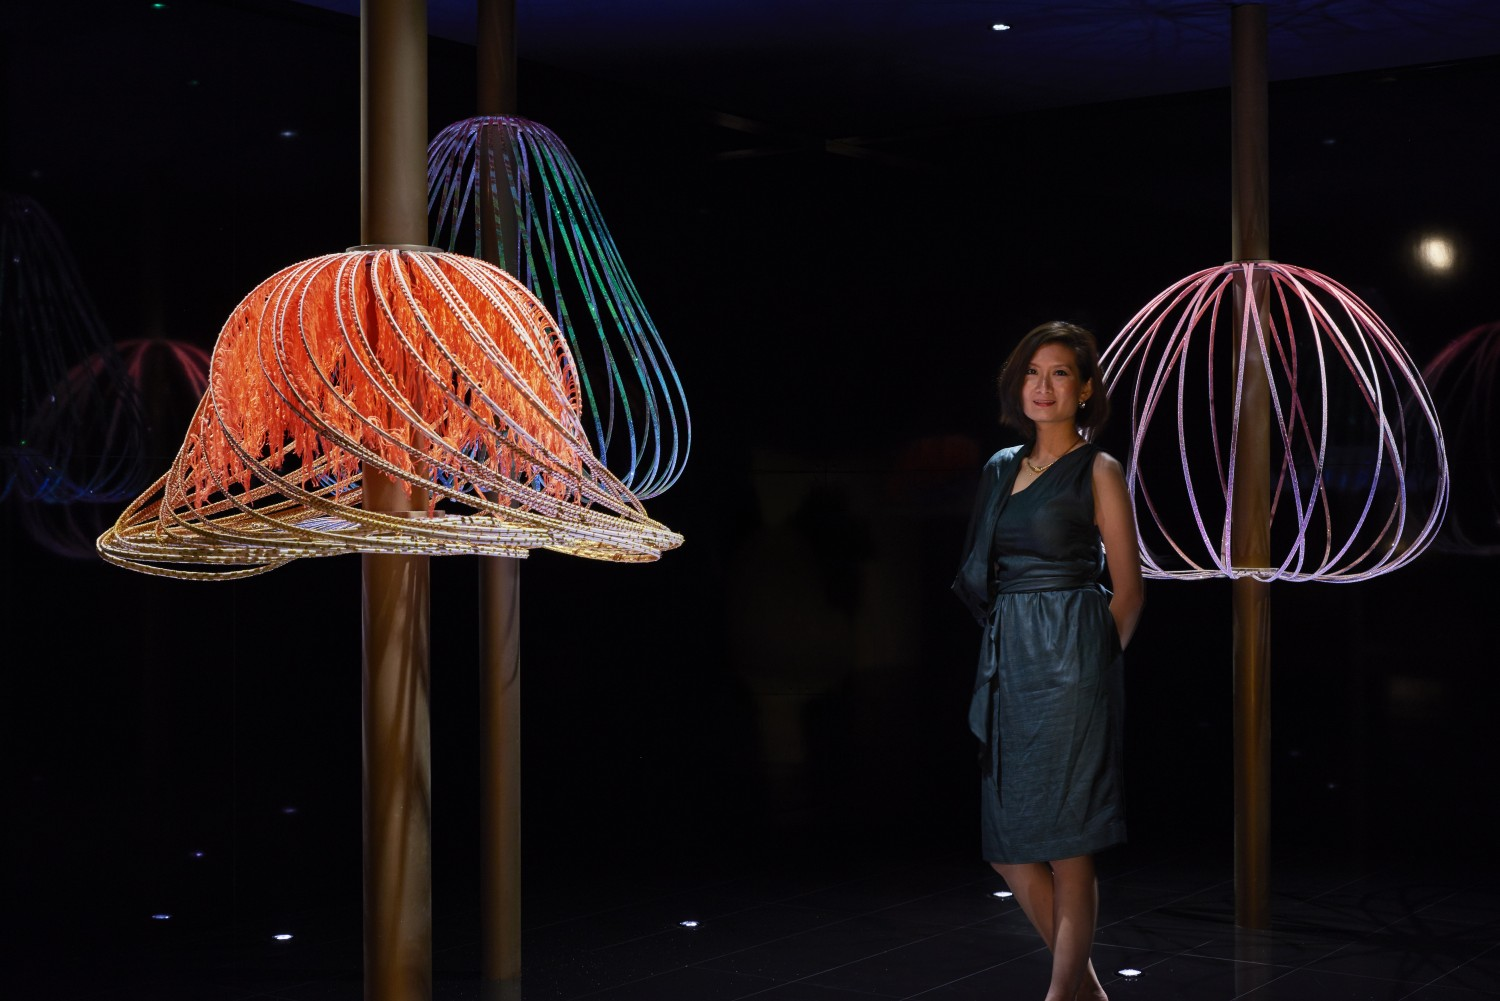 Art Central - 'Sundew' by Elaine Yan Ling Ng for Swarovski